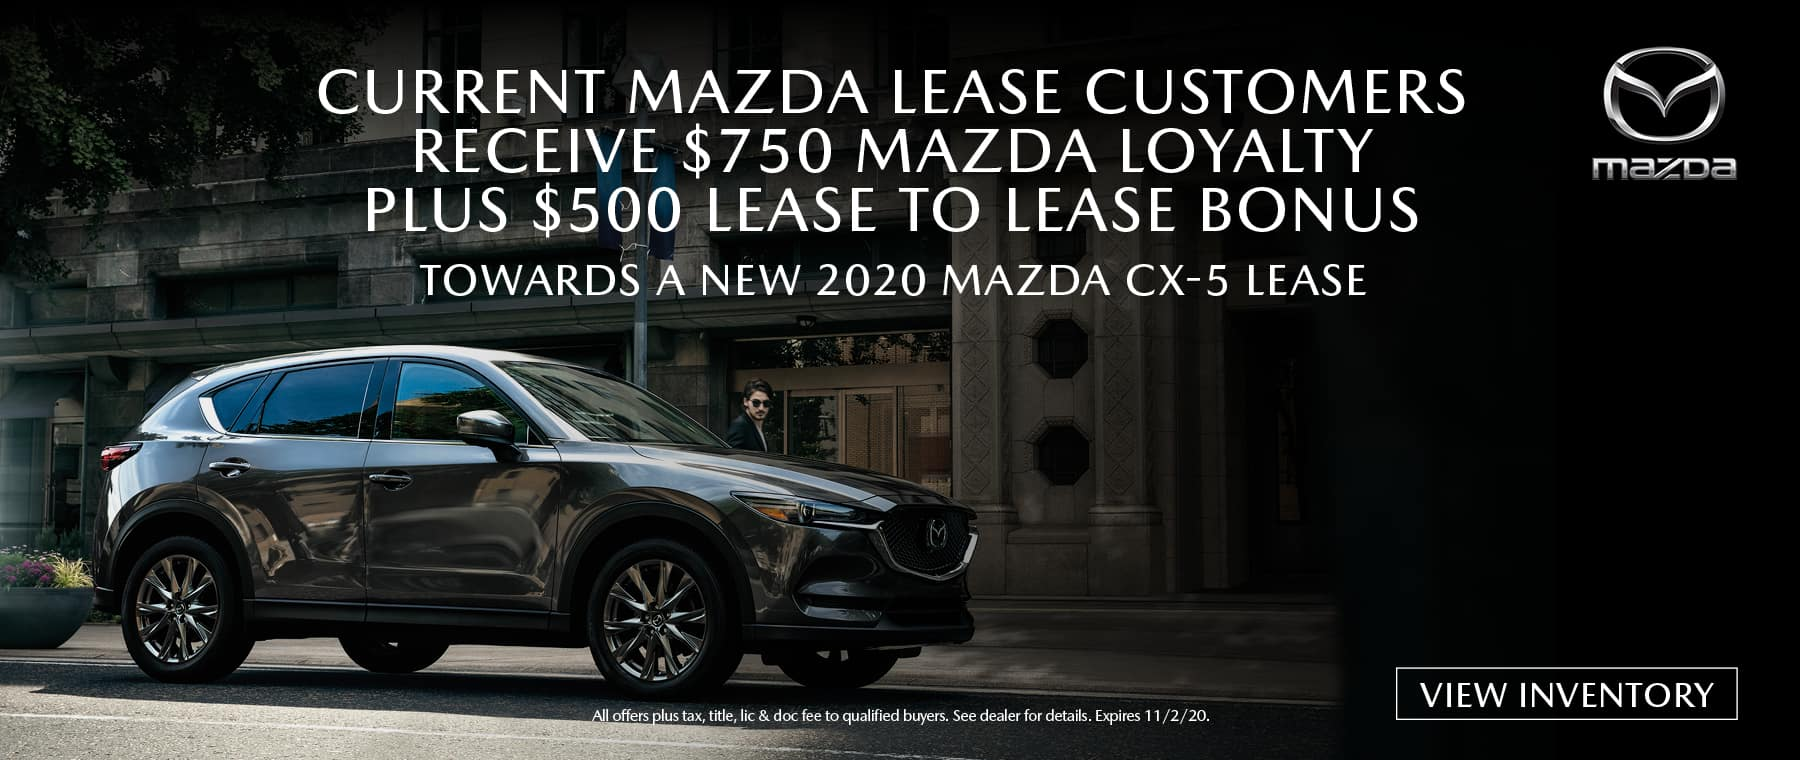 PUGI-MAZ-CX5-LEASE-$750-OCT-1800×760